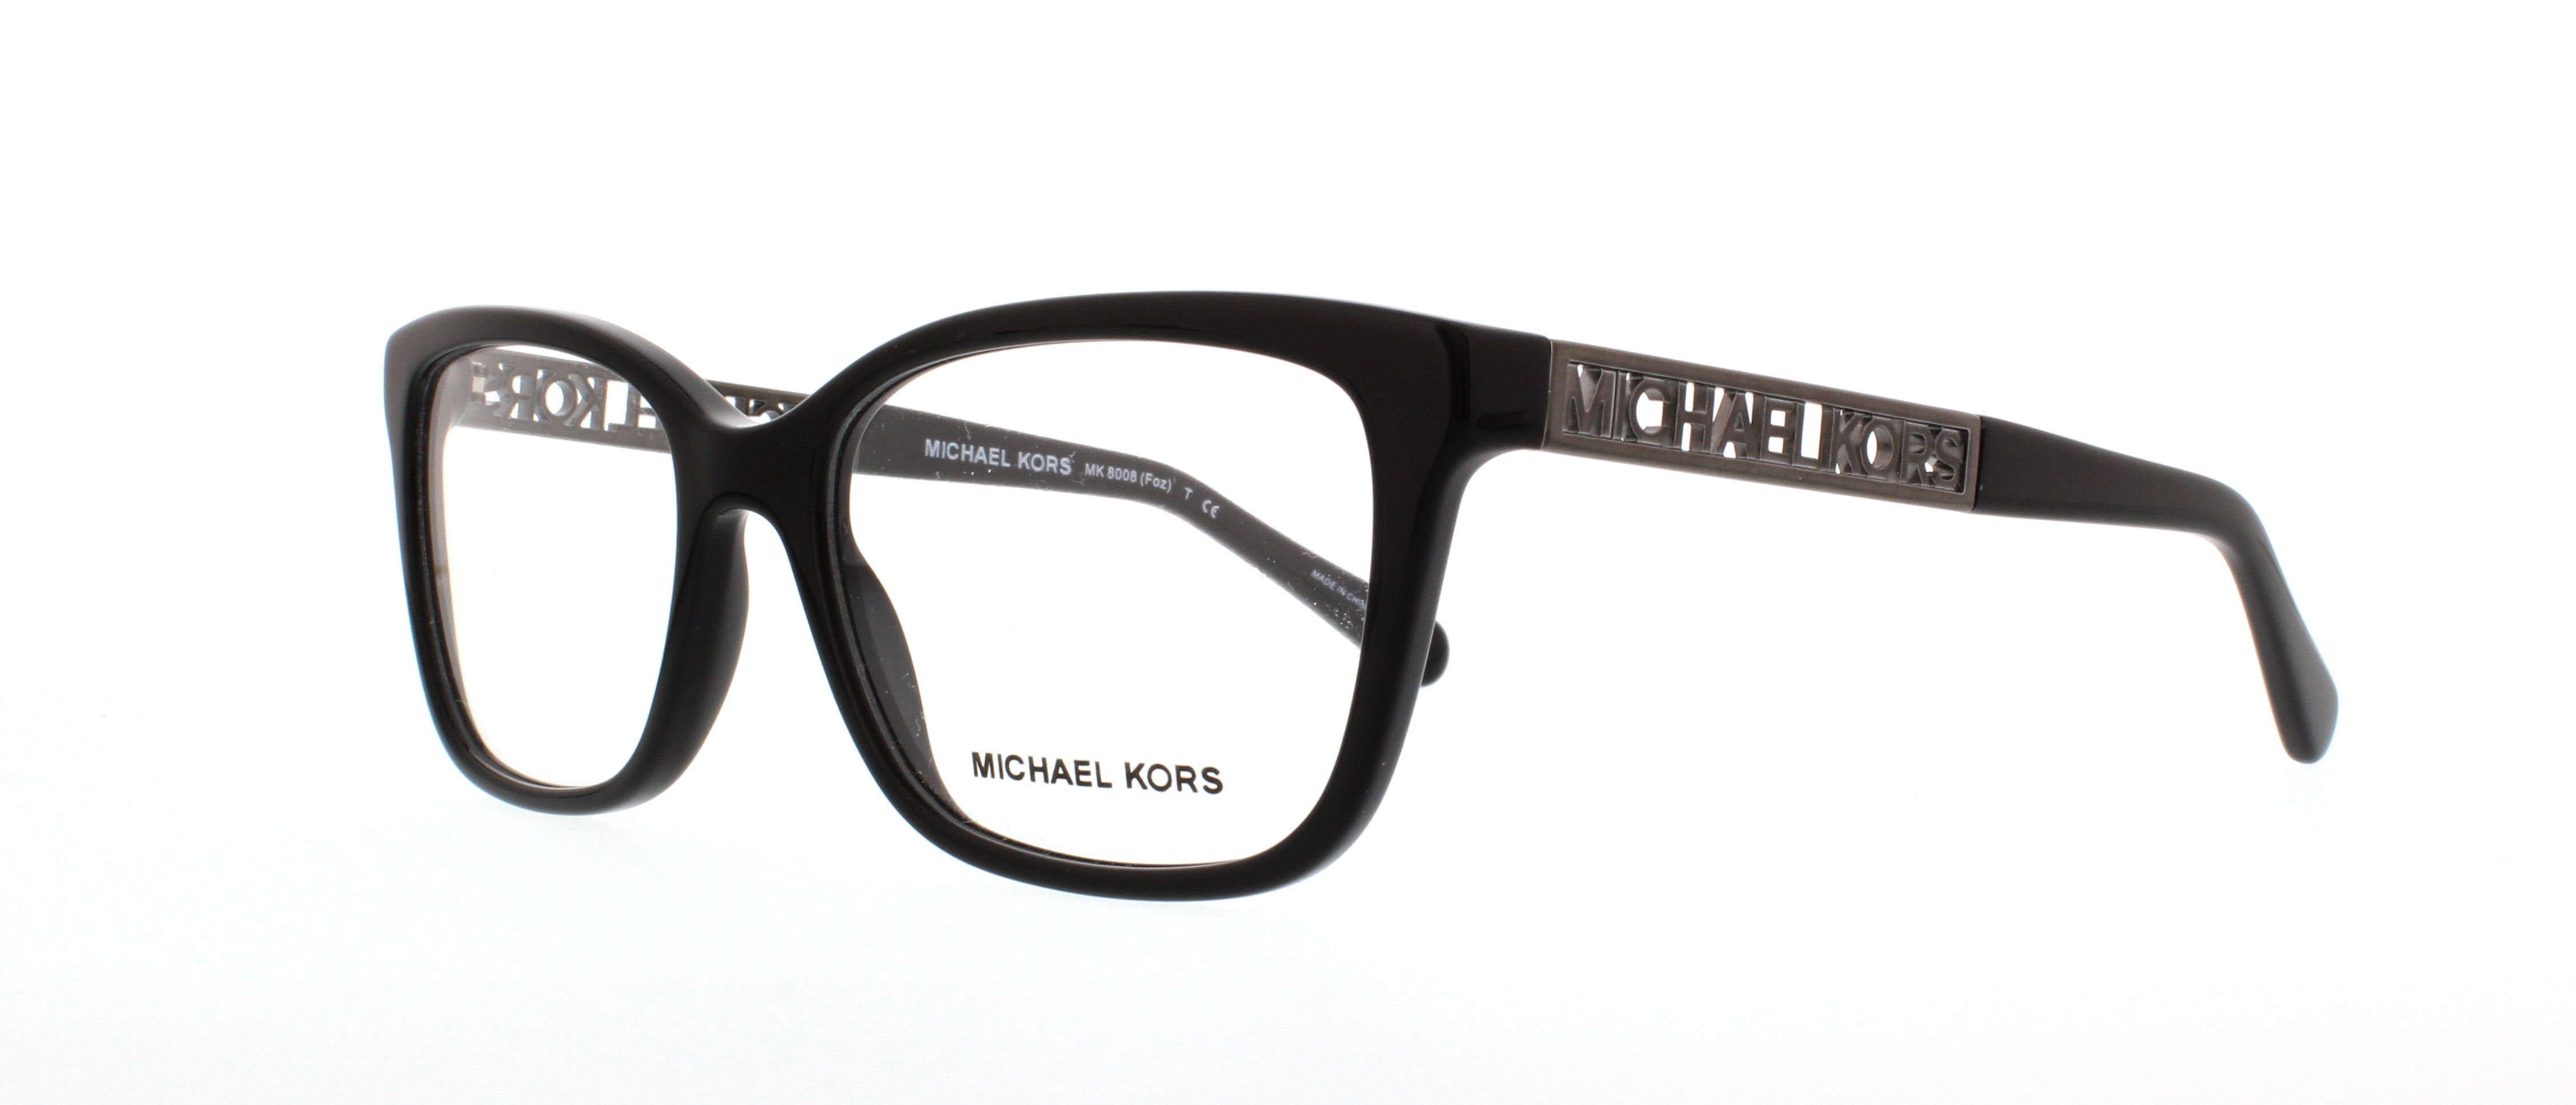 Picture of Michael Kors MK8008 Foz